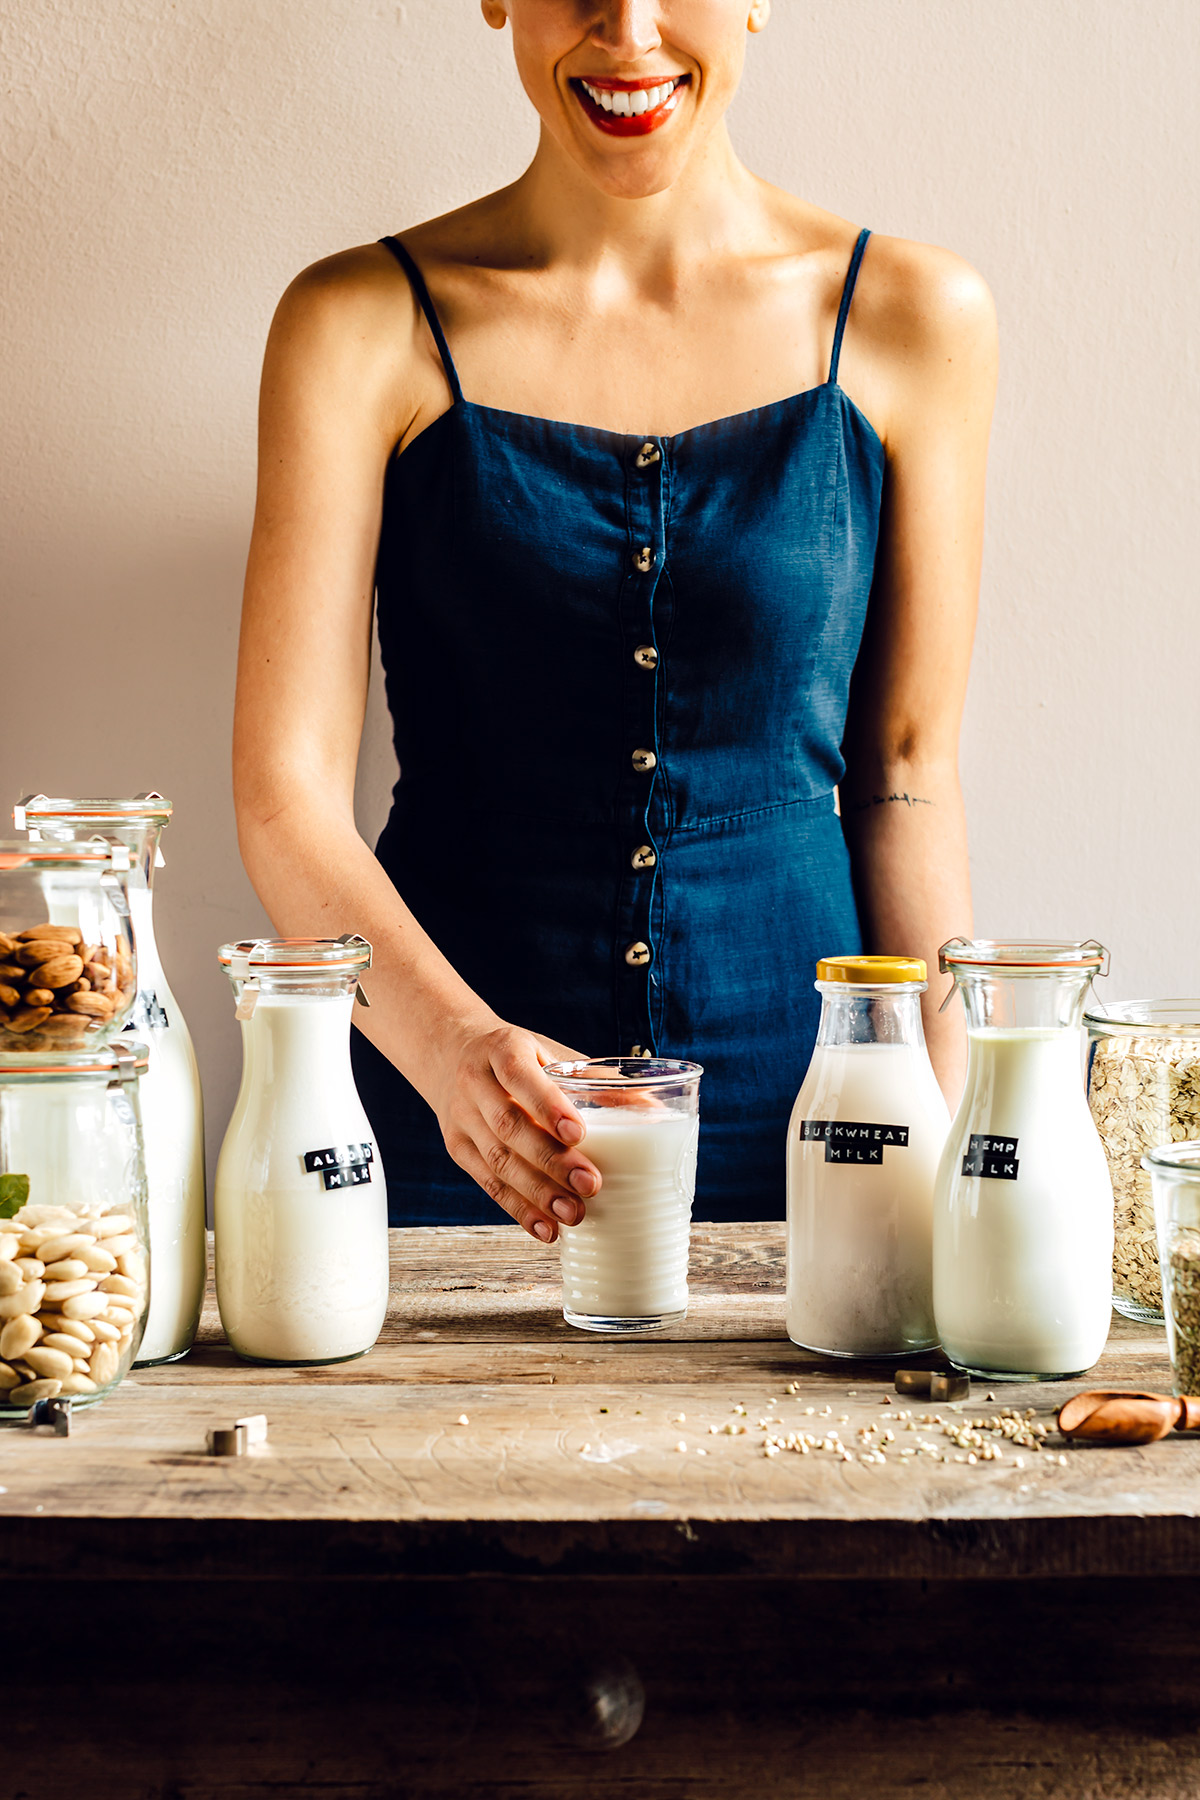 Come preparare il LATTE VEGETALE FATTO IN CASA con estrattore o frullatore Mini guida How to make dairy free milk guide vegan